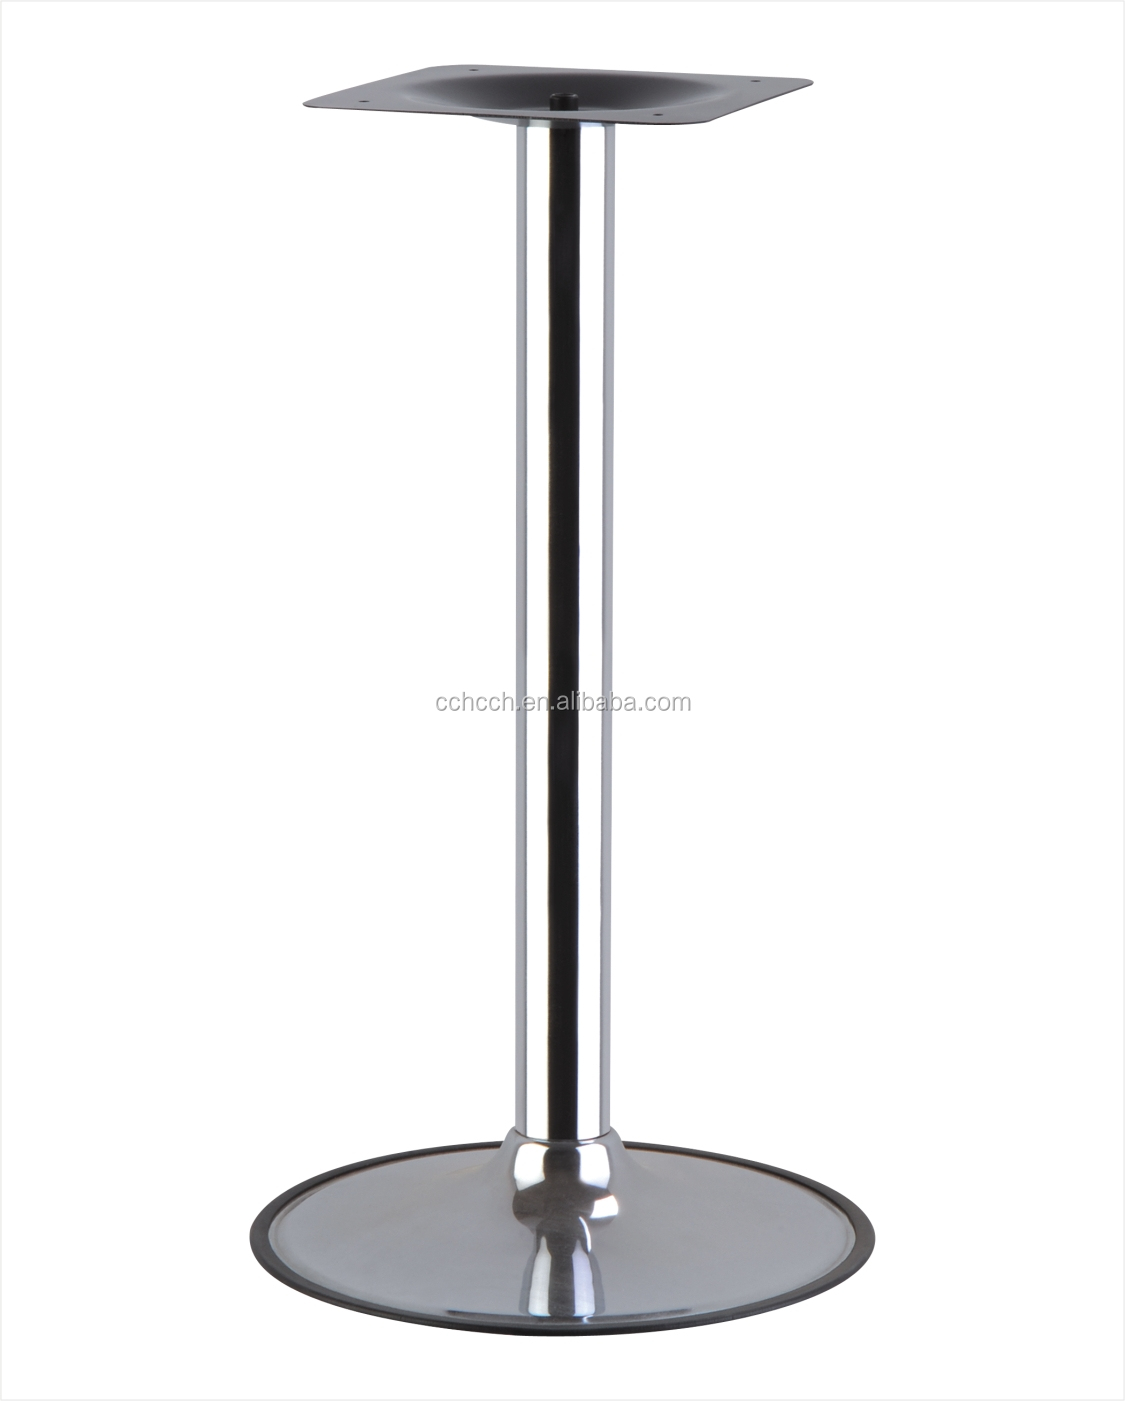 High Quality Removable Bar Table Leg From China   Buy Bar Table Leg,Bar  Table Leg In Furniture Legs,Bar Table Base Product On Alibaba.com